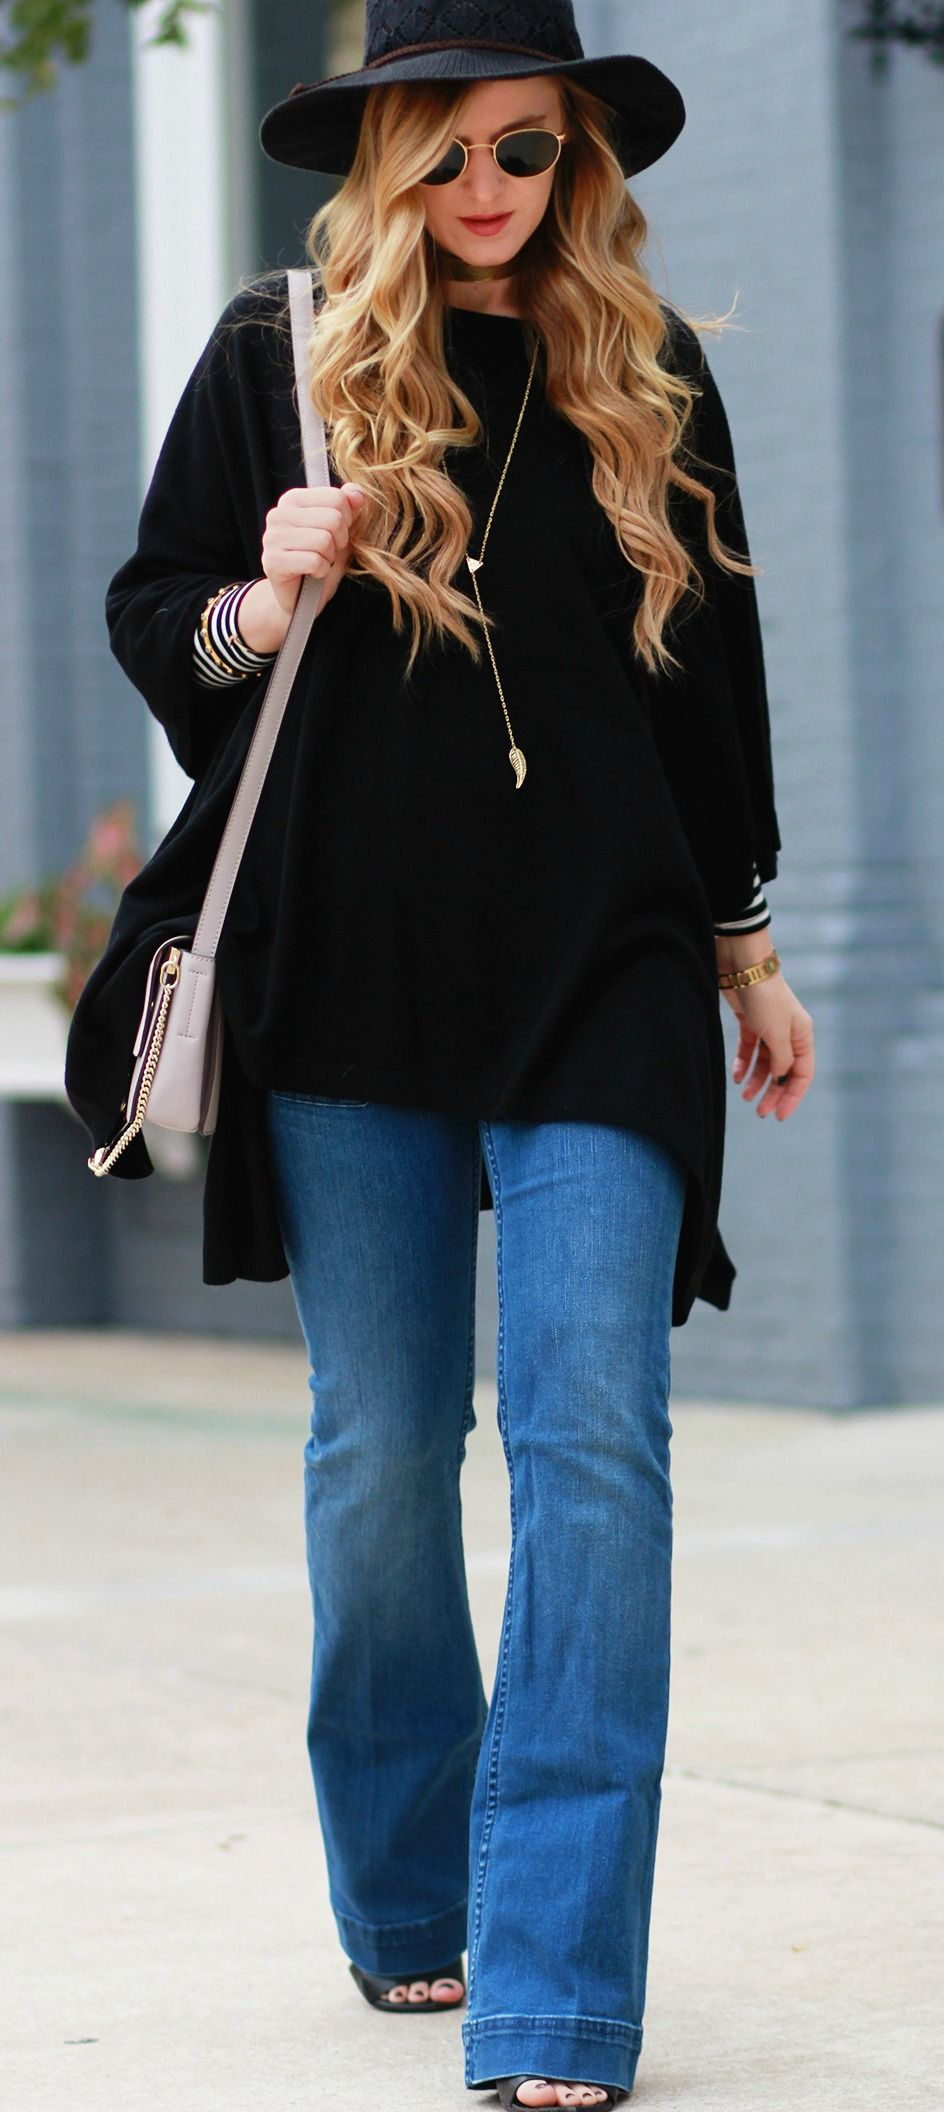 a94e8d40f5 Casual winter outfit styled with a cashmere black poncho paired with a striped  shirt